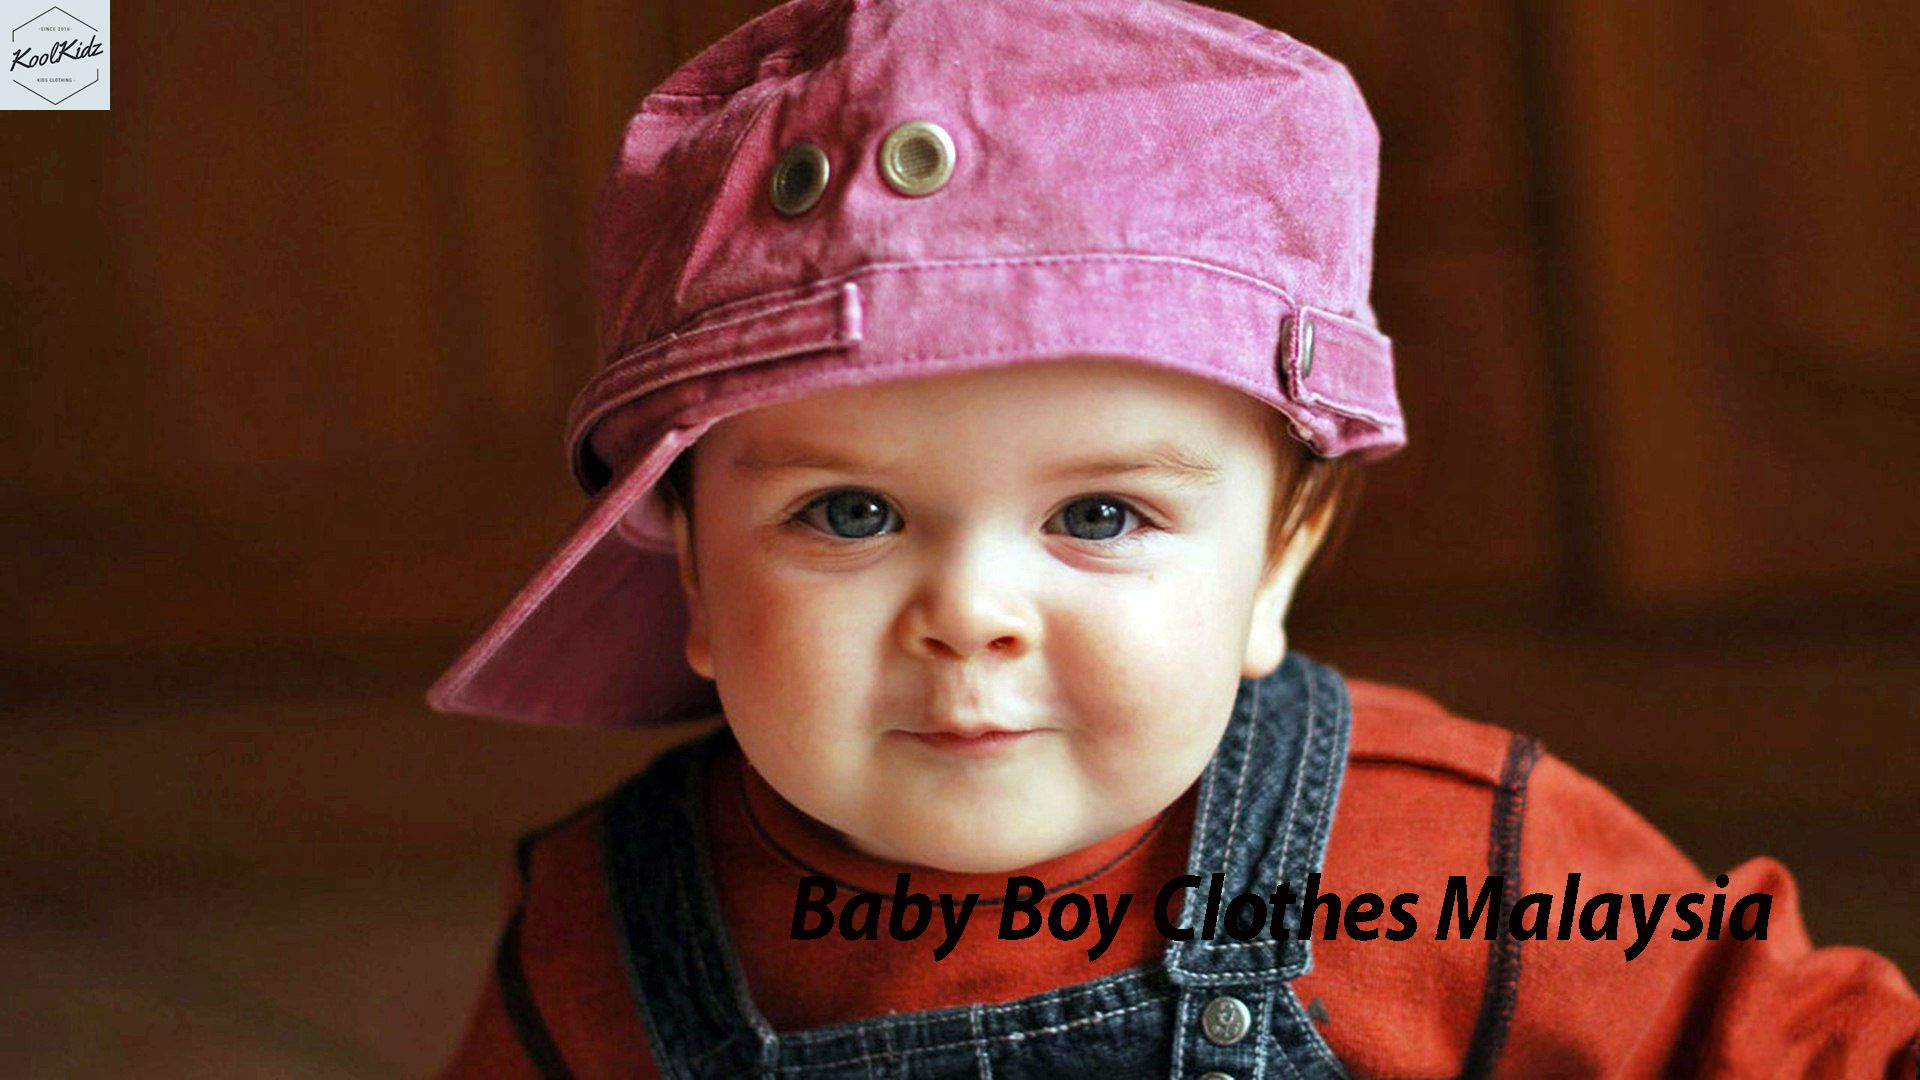 Pin On Baby Boy Clothes Malaysia